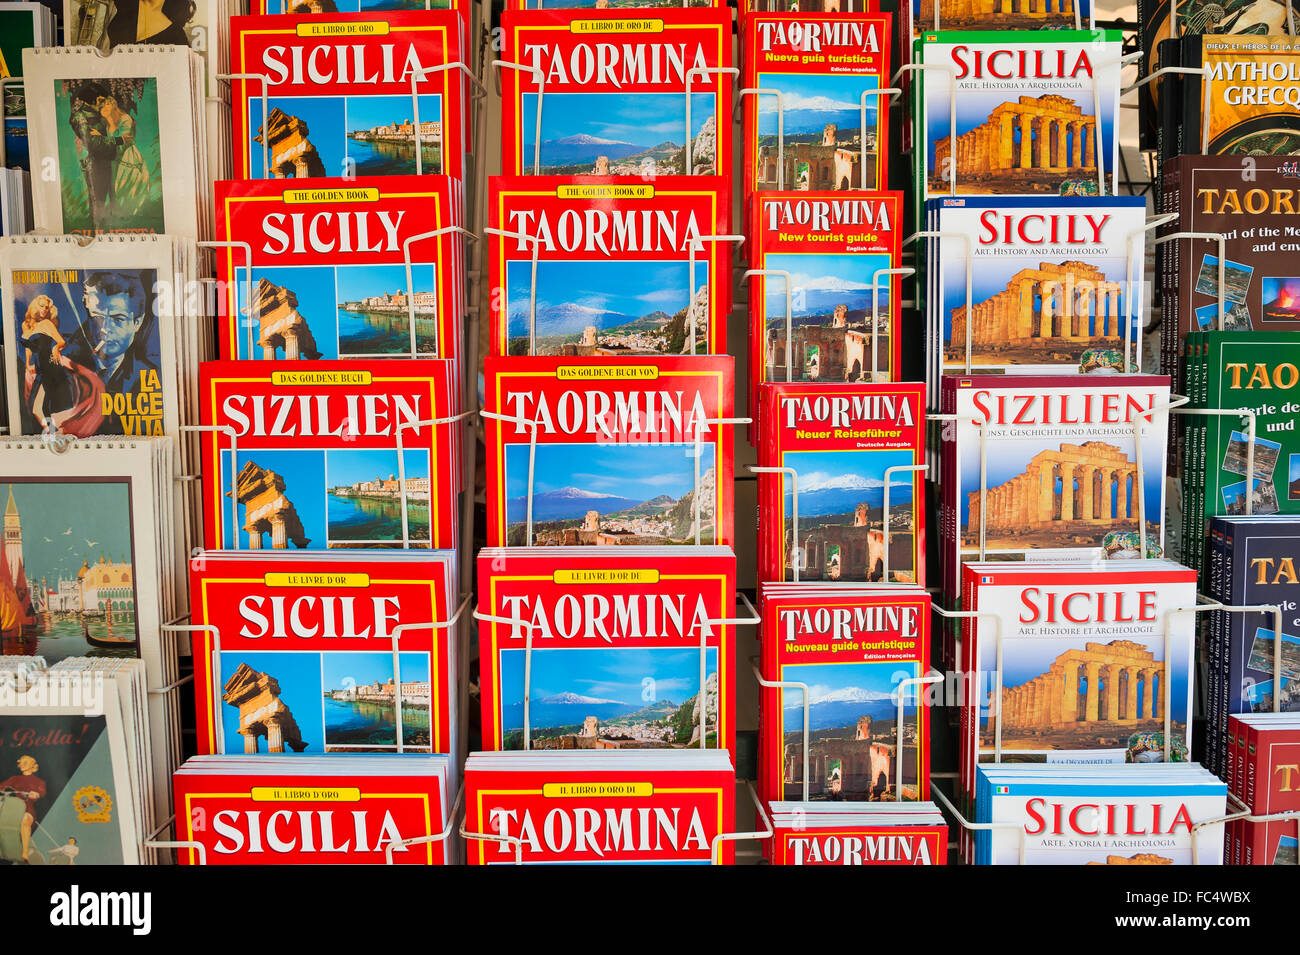 Guide book Sicily, view of a display of guide books in different languages in a street in Taormina, Sicily. - Stock Image